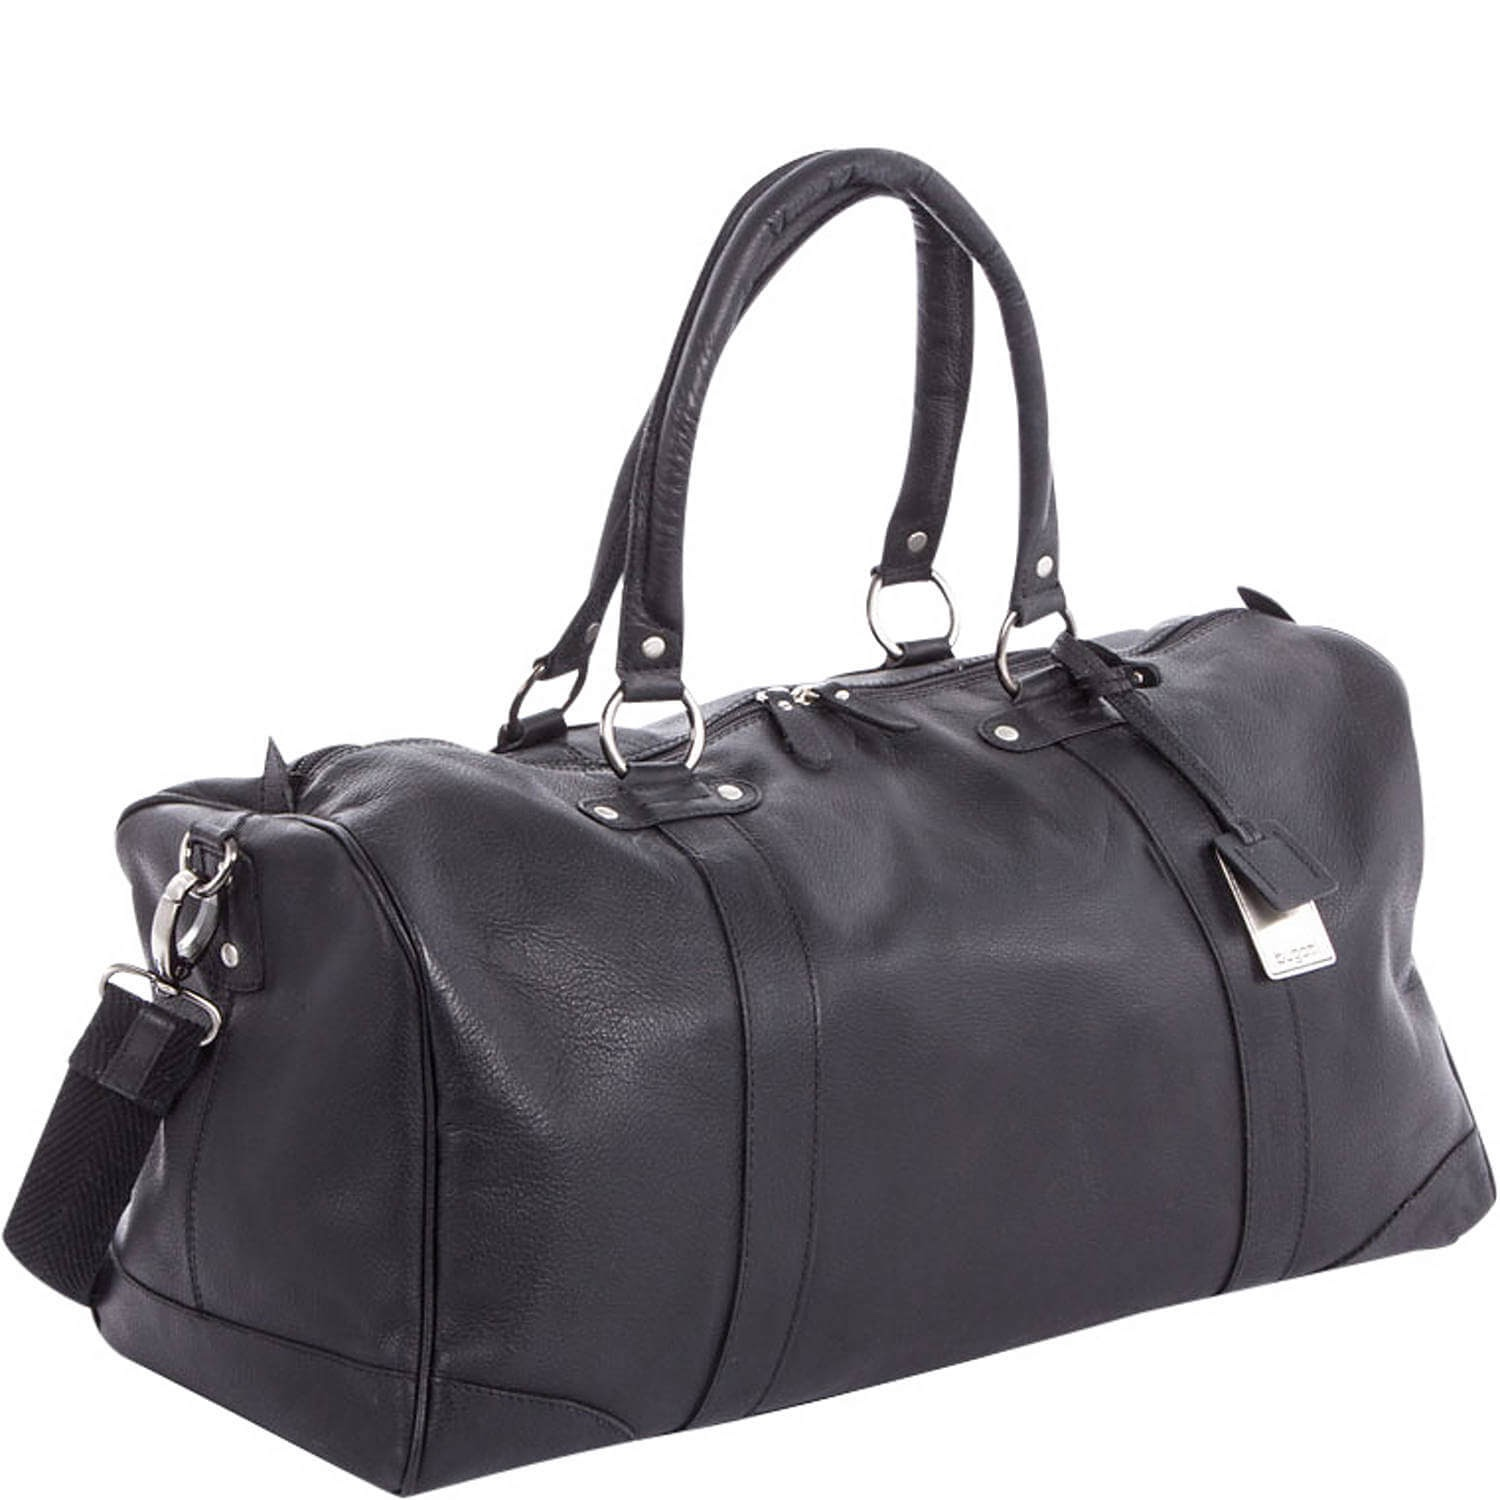 Bugatti Perreira Duffle Bag Leather